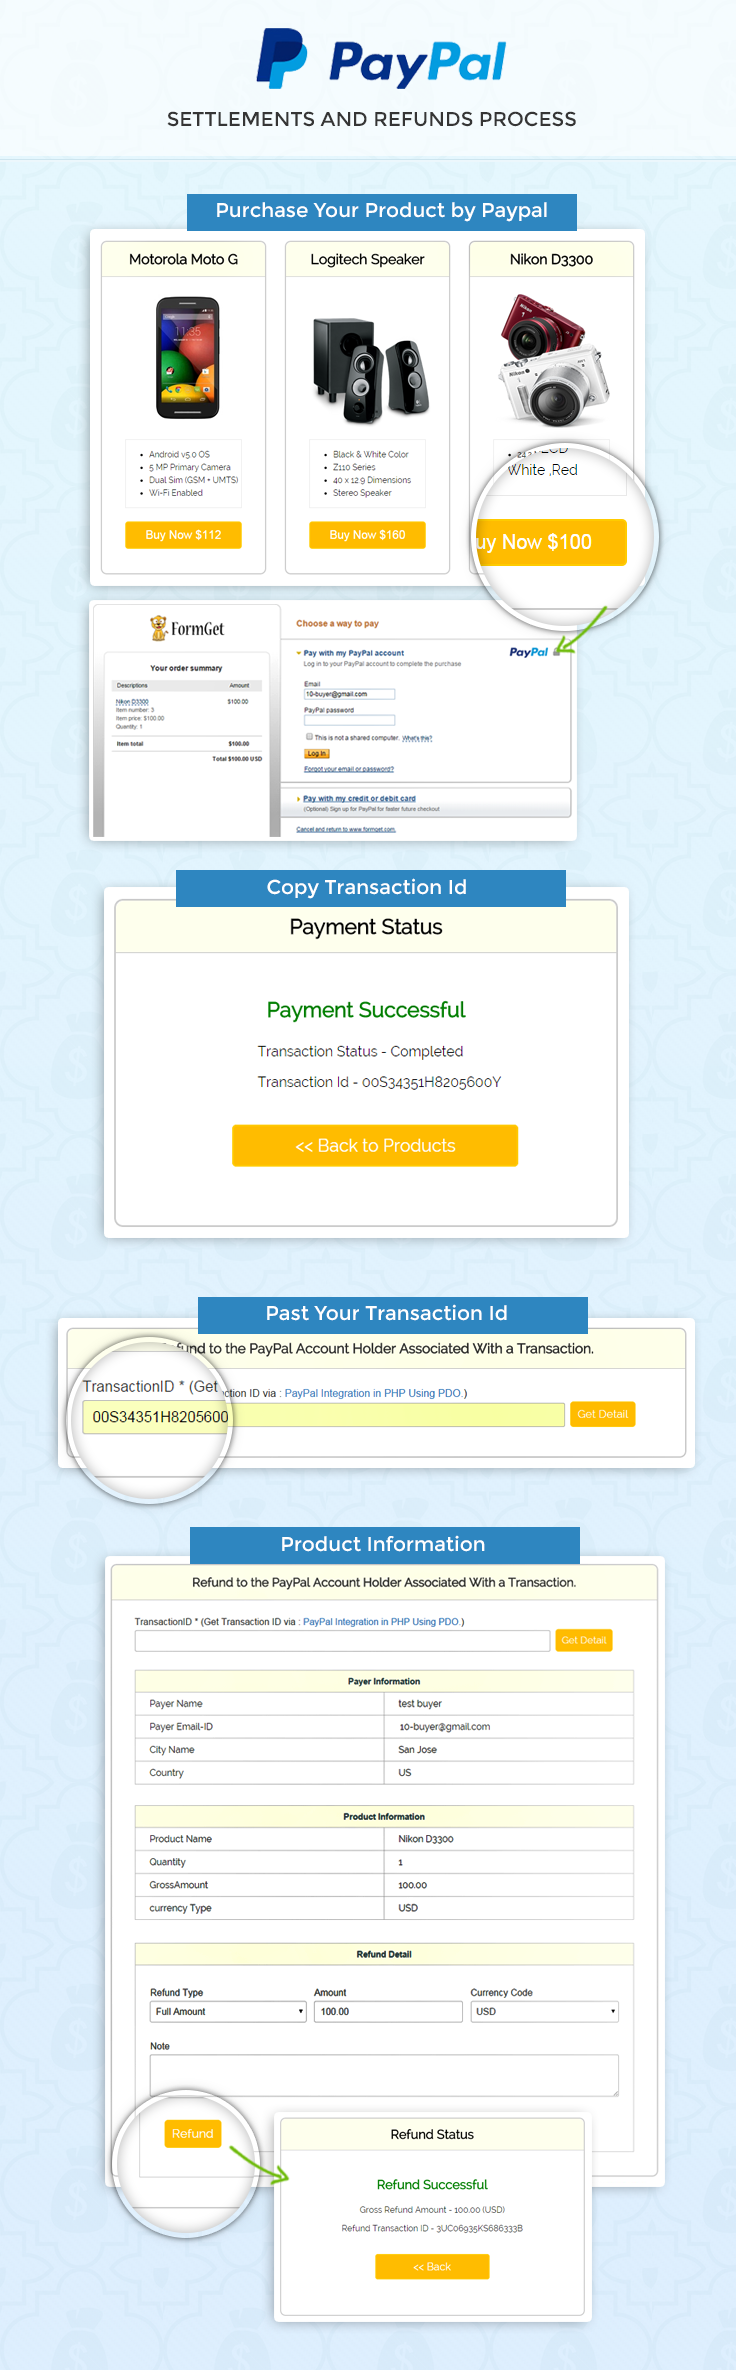 Paypal refund or settlements process using Paypal refund api in php